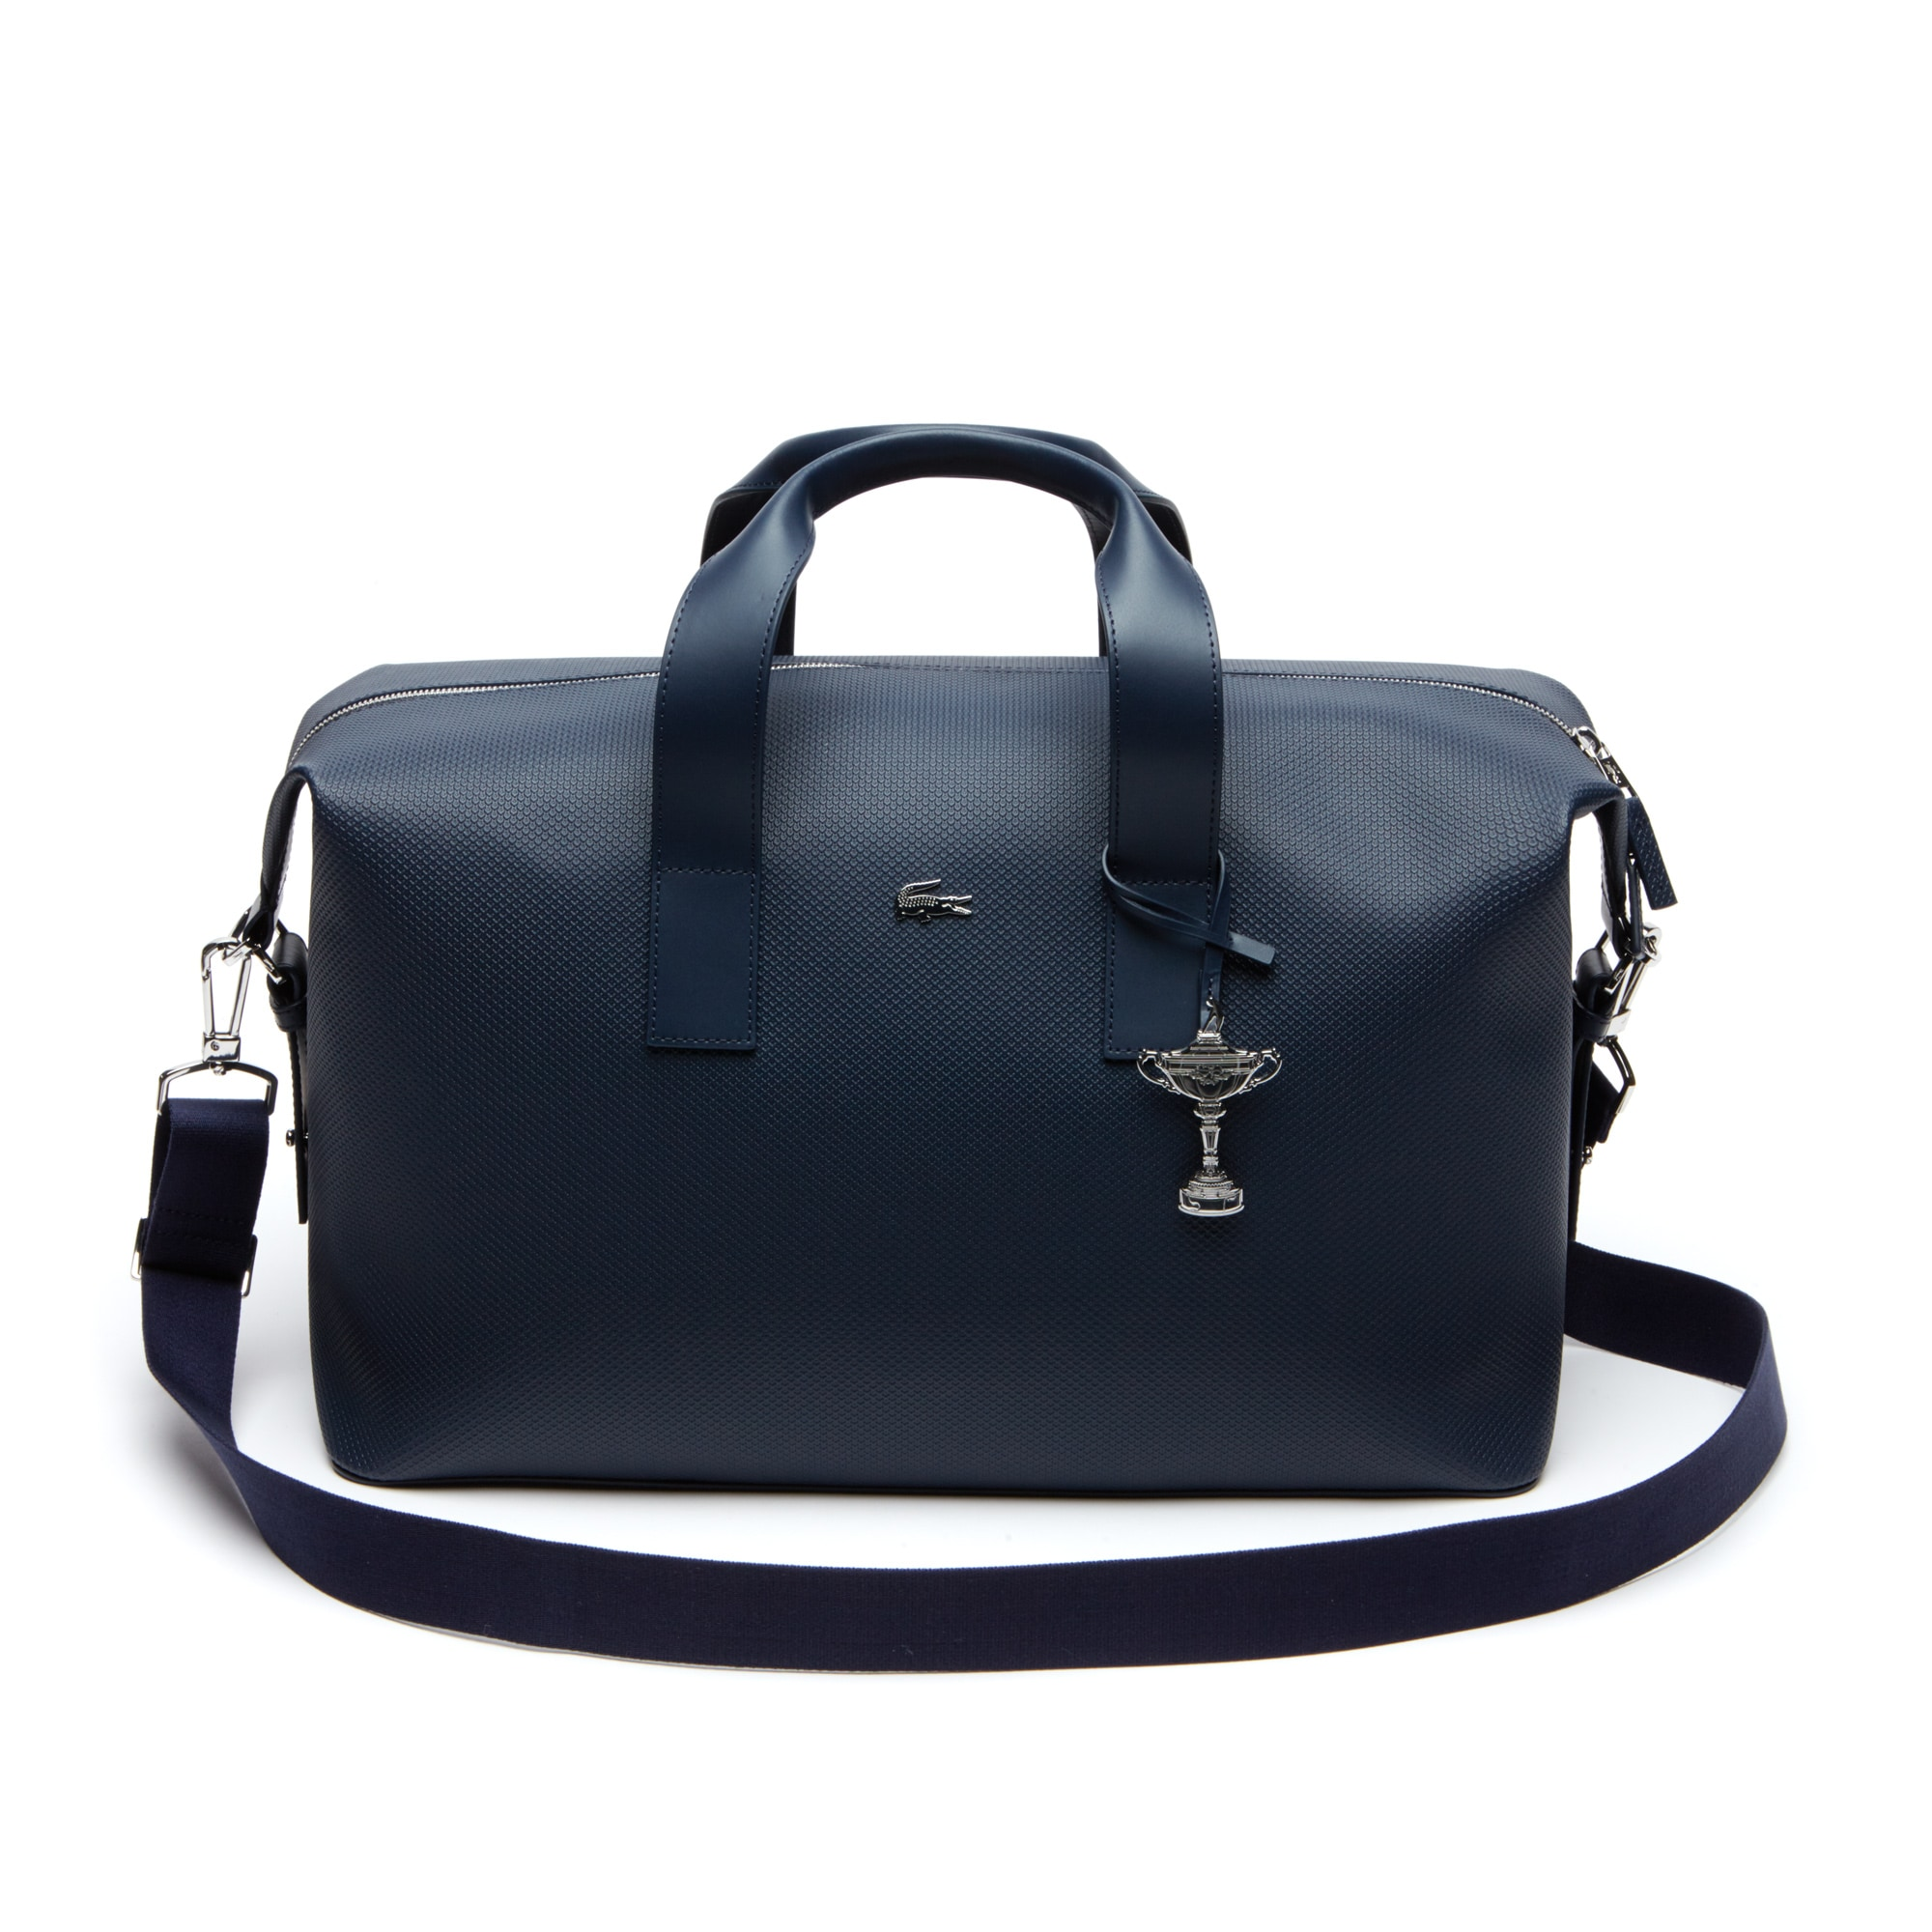 Sac weekend Golf Lacoste SPORT Ryder Cup en cuir